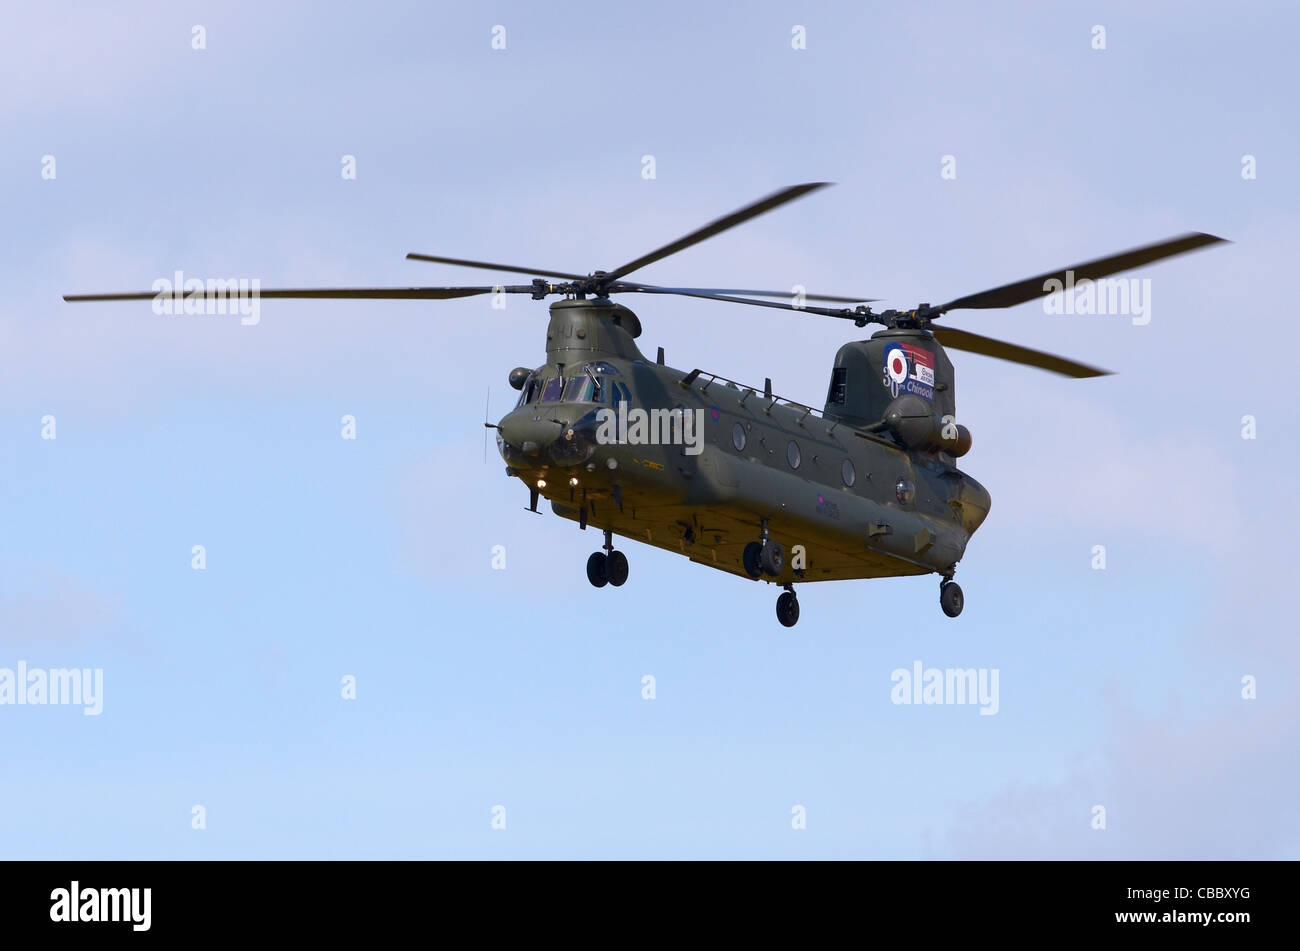 Chinook HC2A helicopter, operated by 18/27 Squadron of the RAF, on approach for landing at RAF Fairford, UK - Stock Image